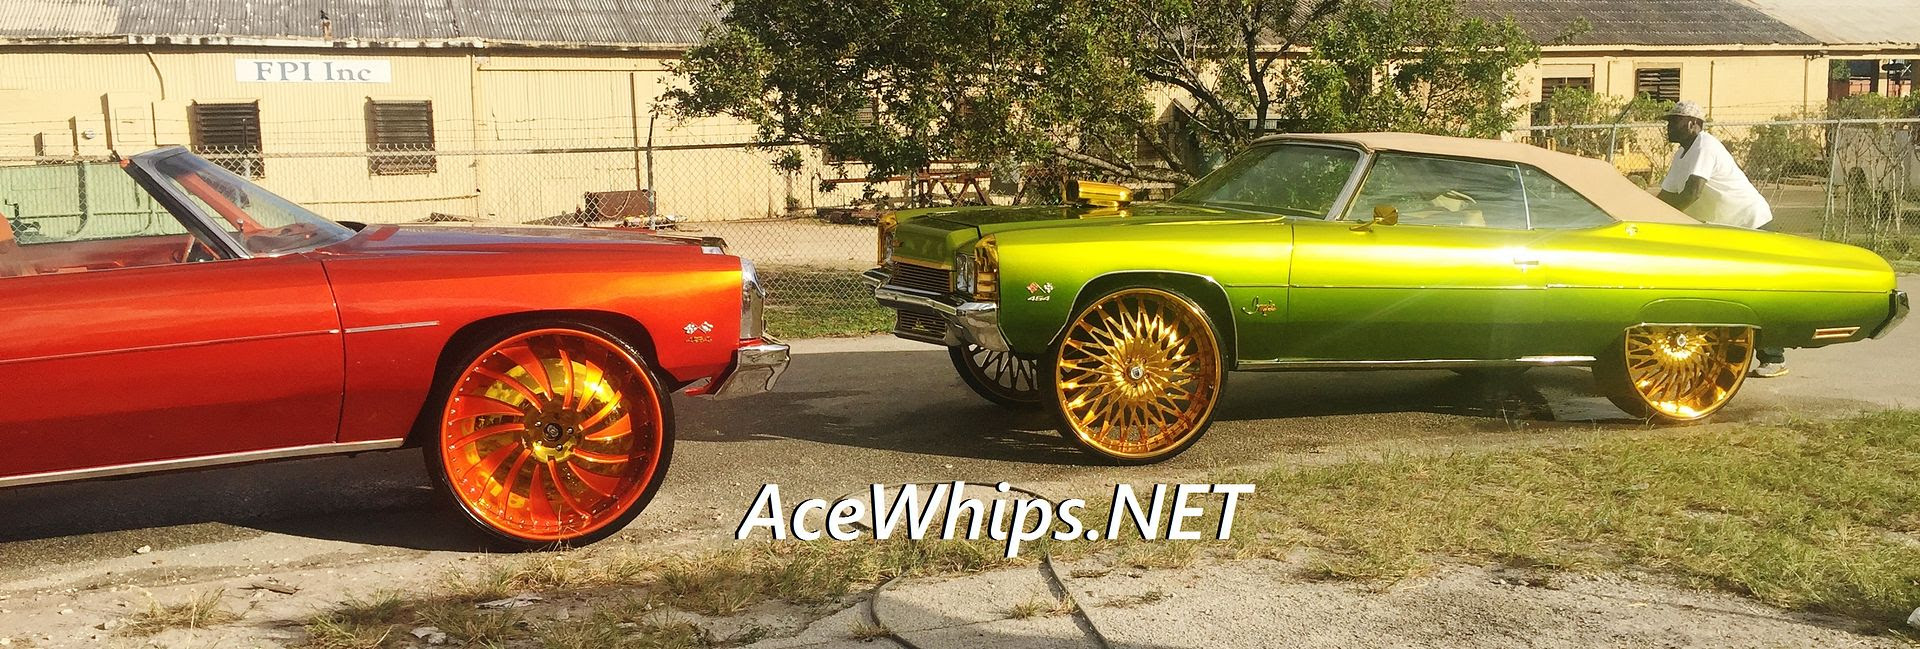 Ace-1: Spoadi's 73 Chevy Vert on 30's Forgis And Nava's ...